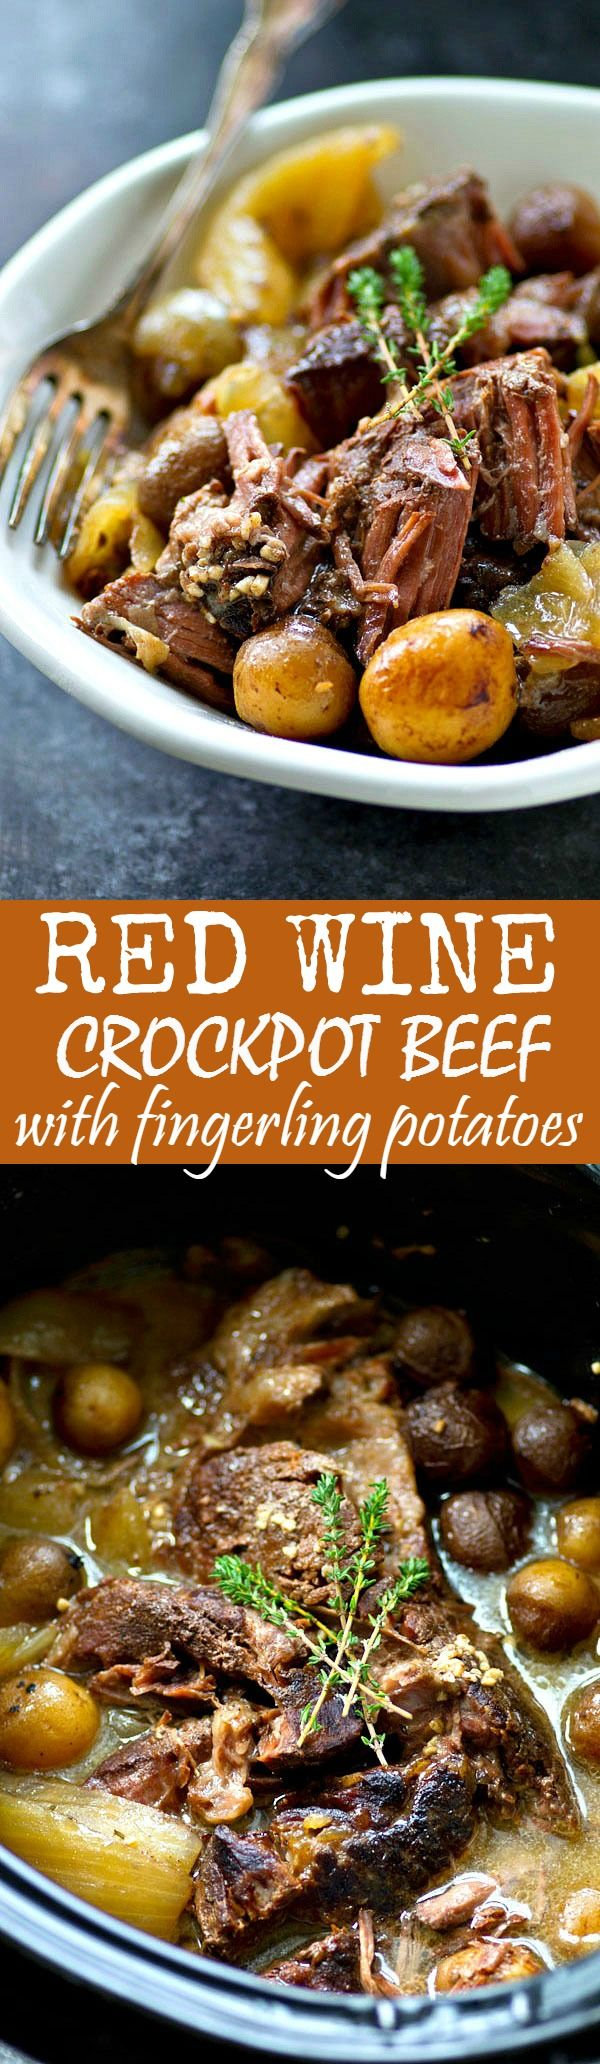 The most tender crockpot beef EVER! This easy beef dinner is unbelievably flavorful thanks to the red wine and lots of tender little fingerling potatoes make it an entire hands-off meal!